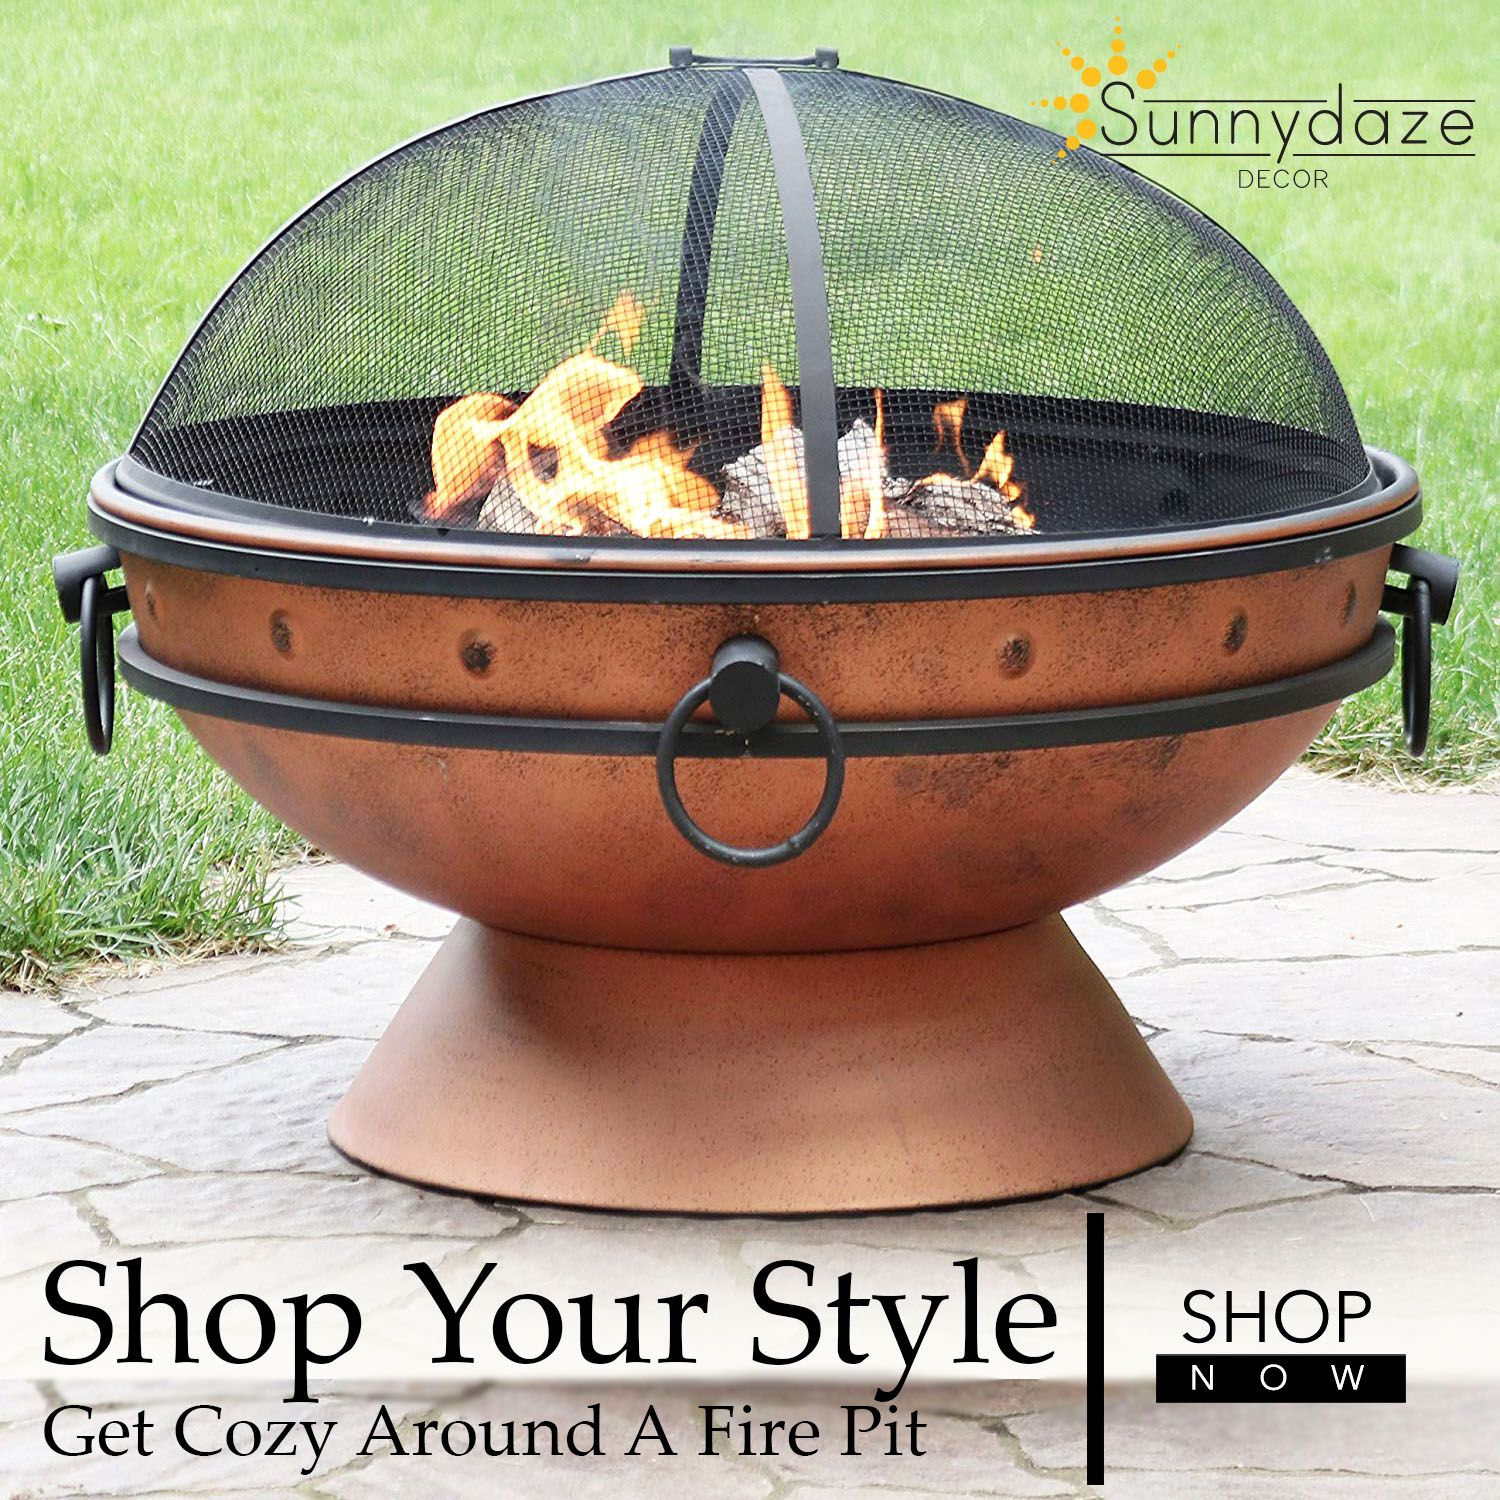 Bring a beautiful outdoor woodburning fire pit to your yard patio